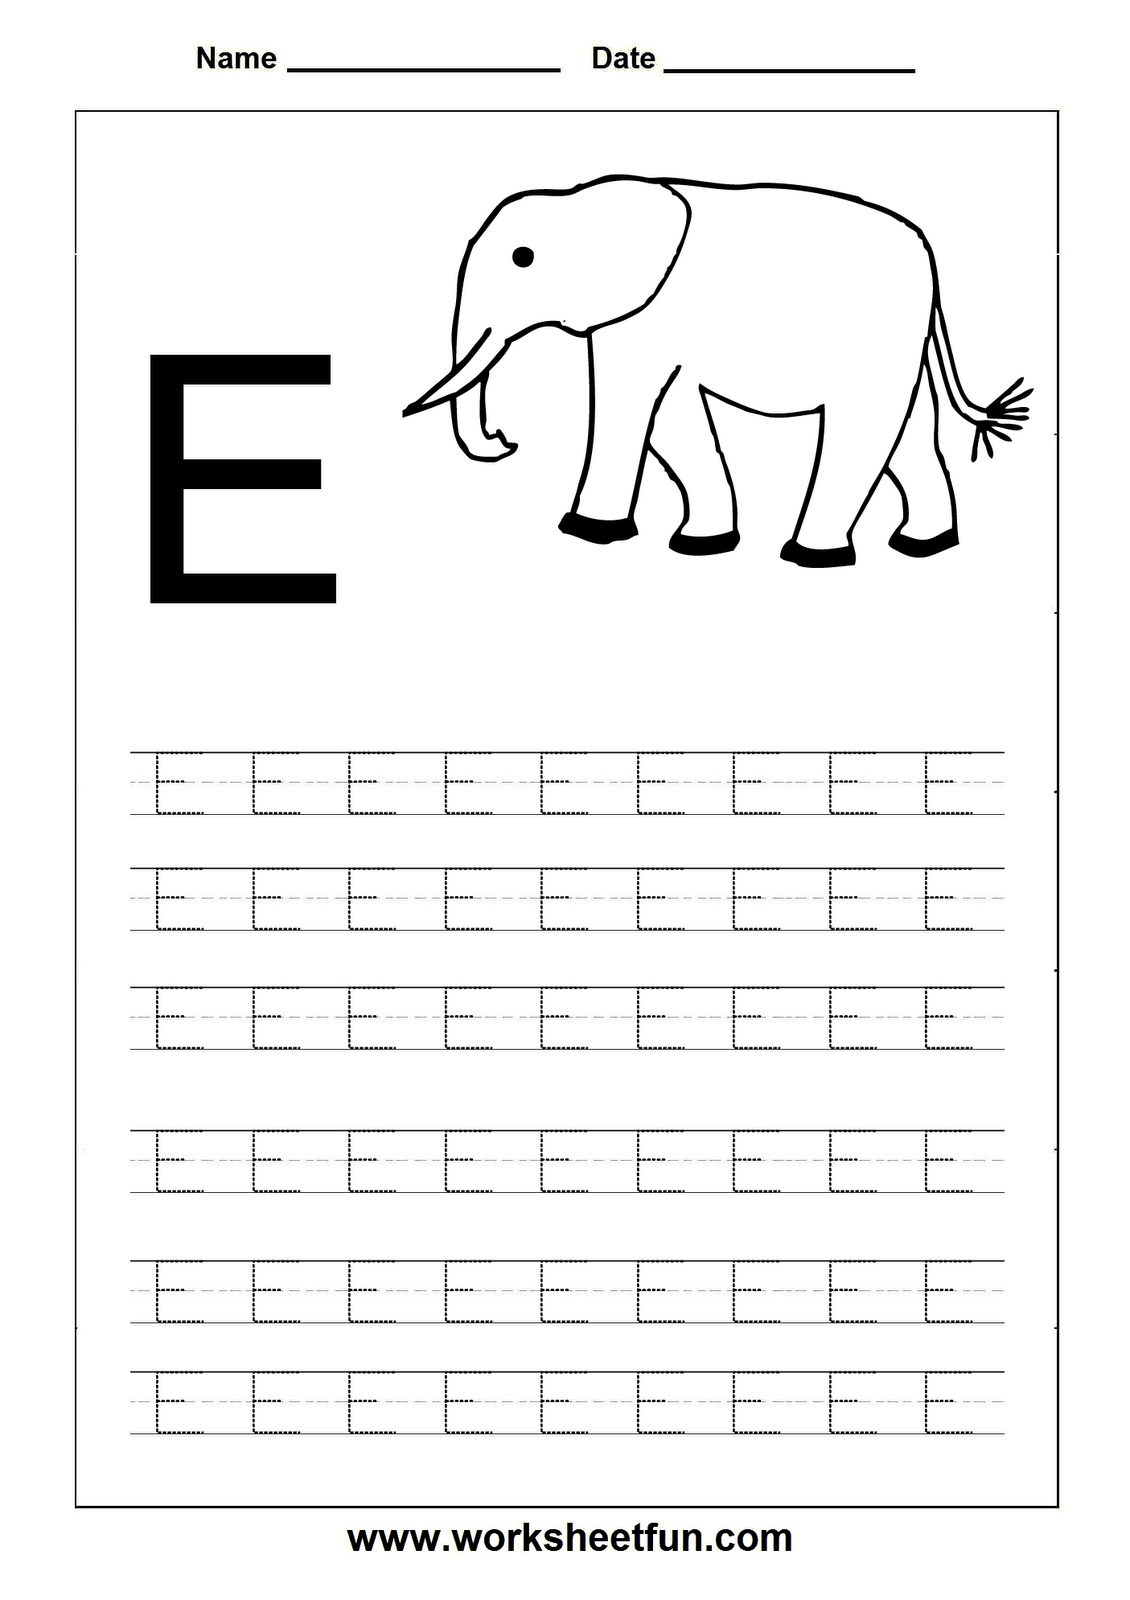 Free Printable Worksheets - Contents | Letter E Worksheets